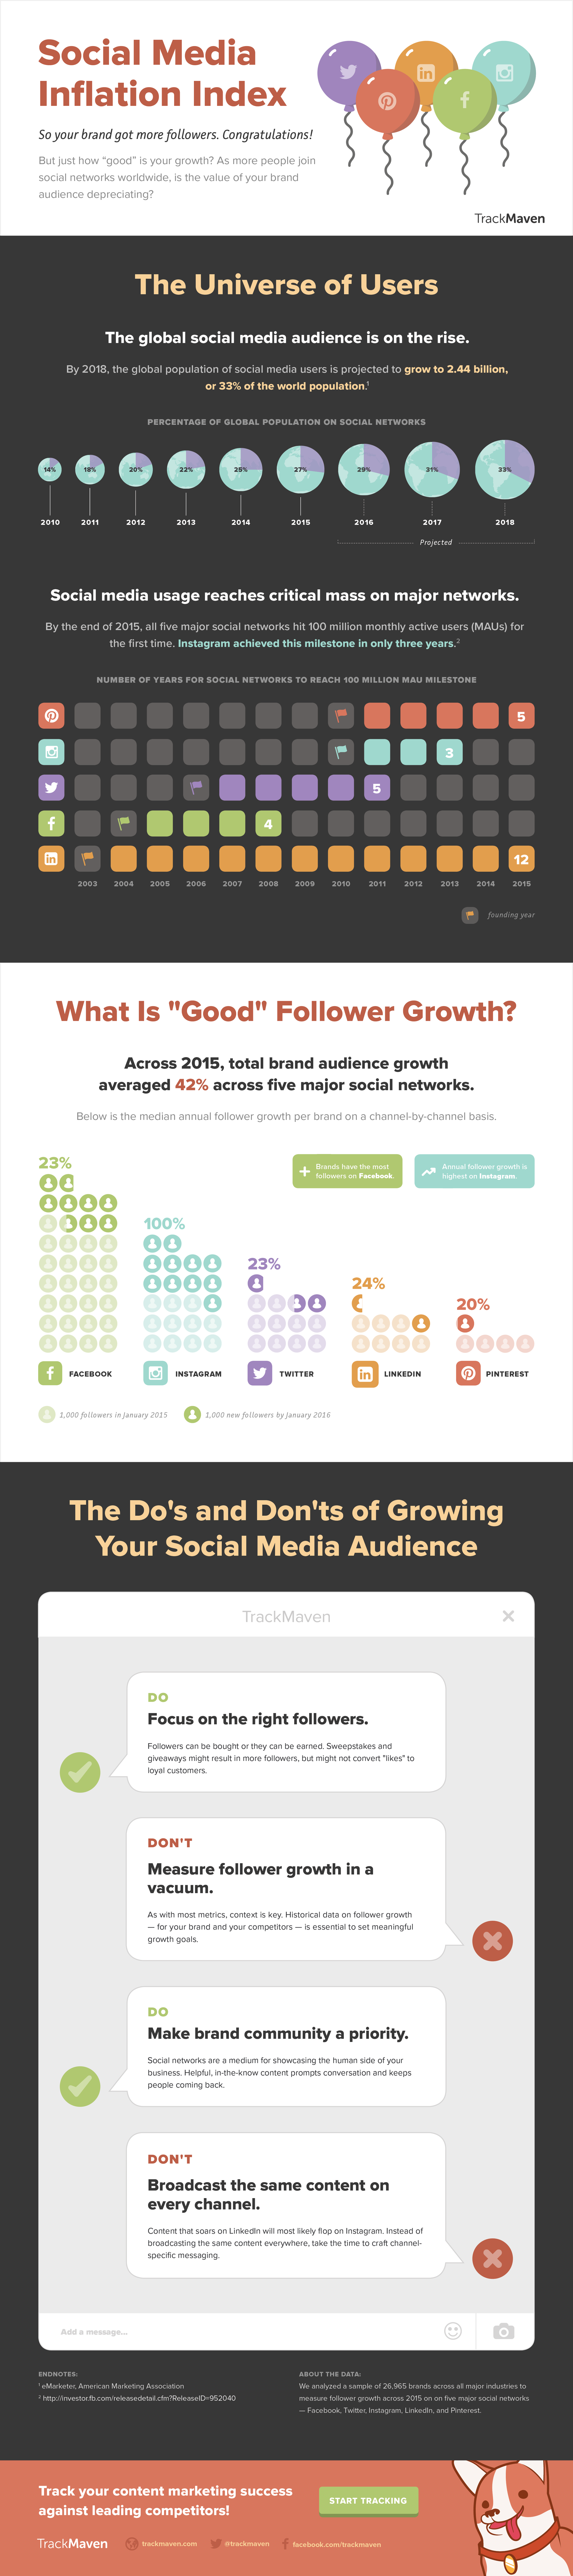 The Social Media Inflation Index 2016 [Infographic]   Social Media Today